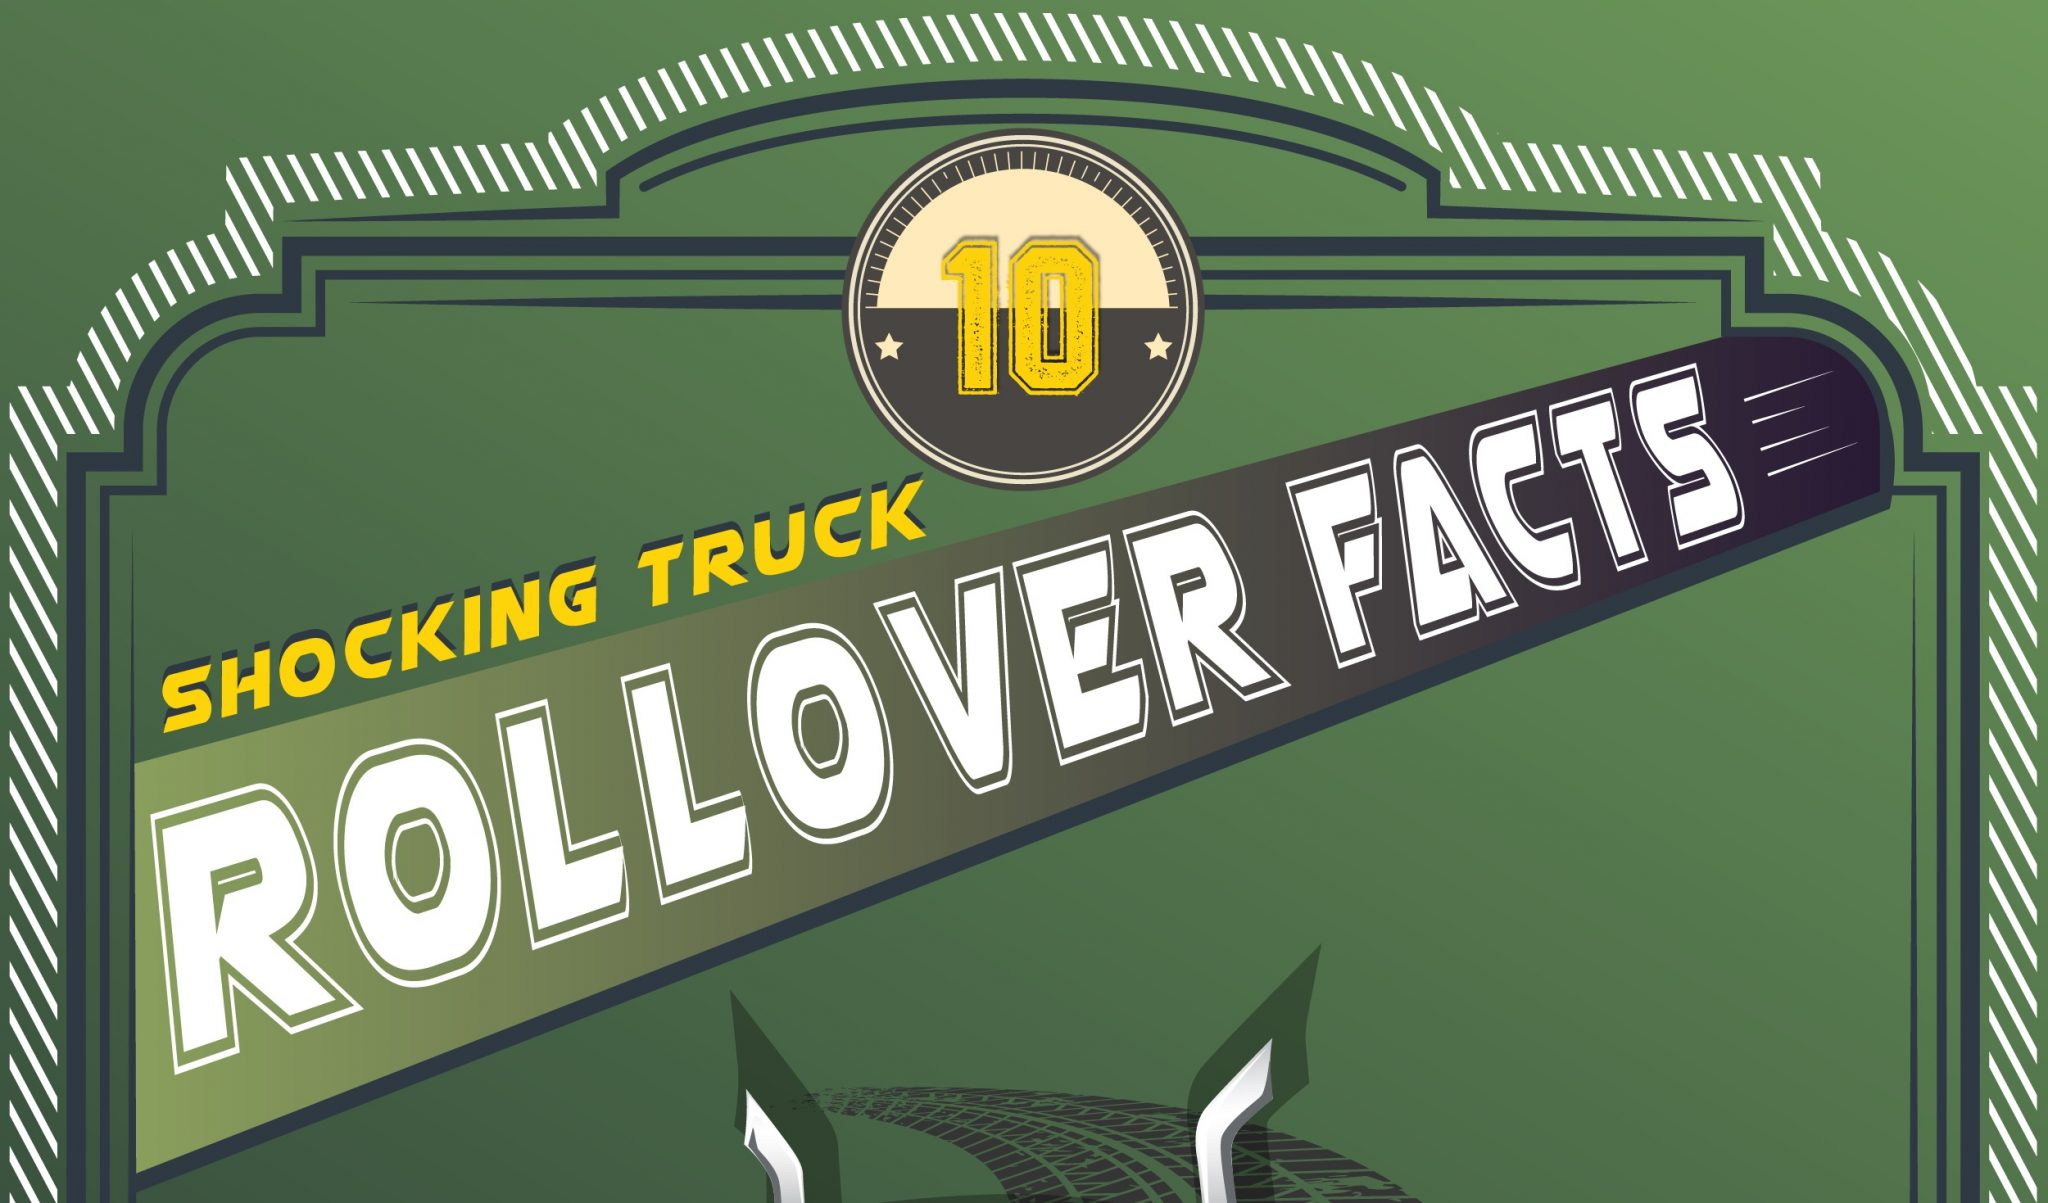 INFOGRAPHIC: 10 Shocking Truck Rollover Facts